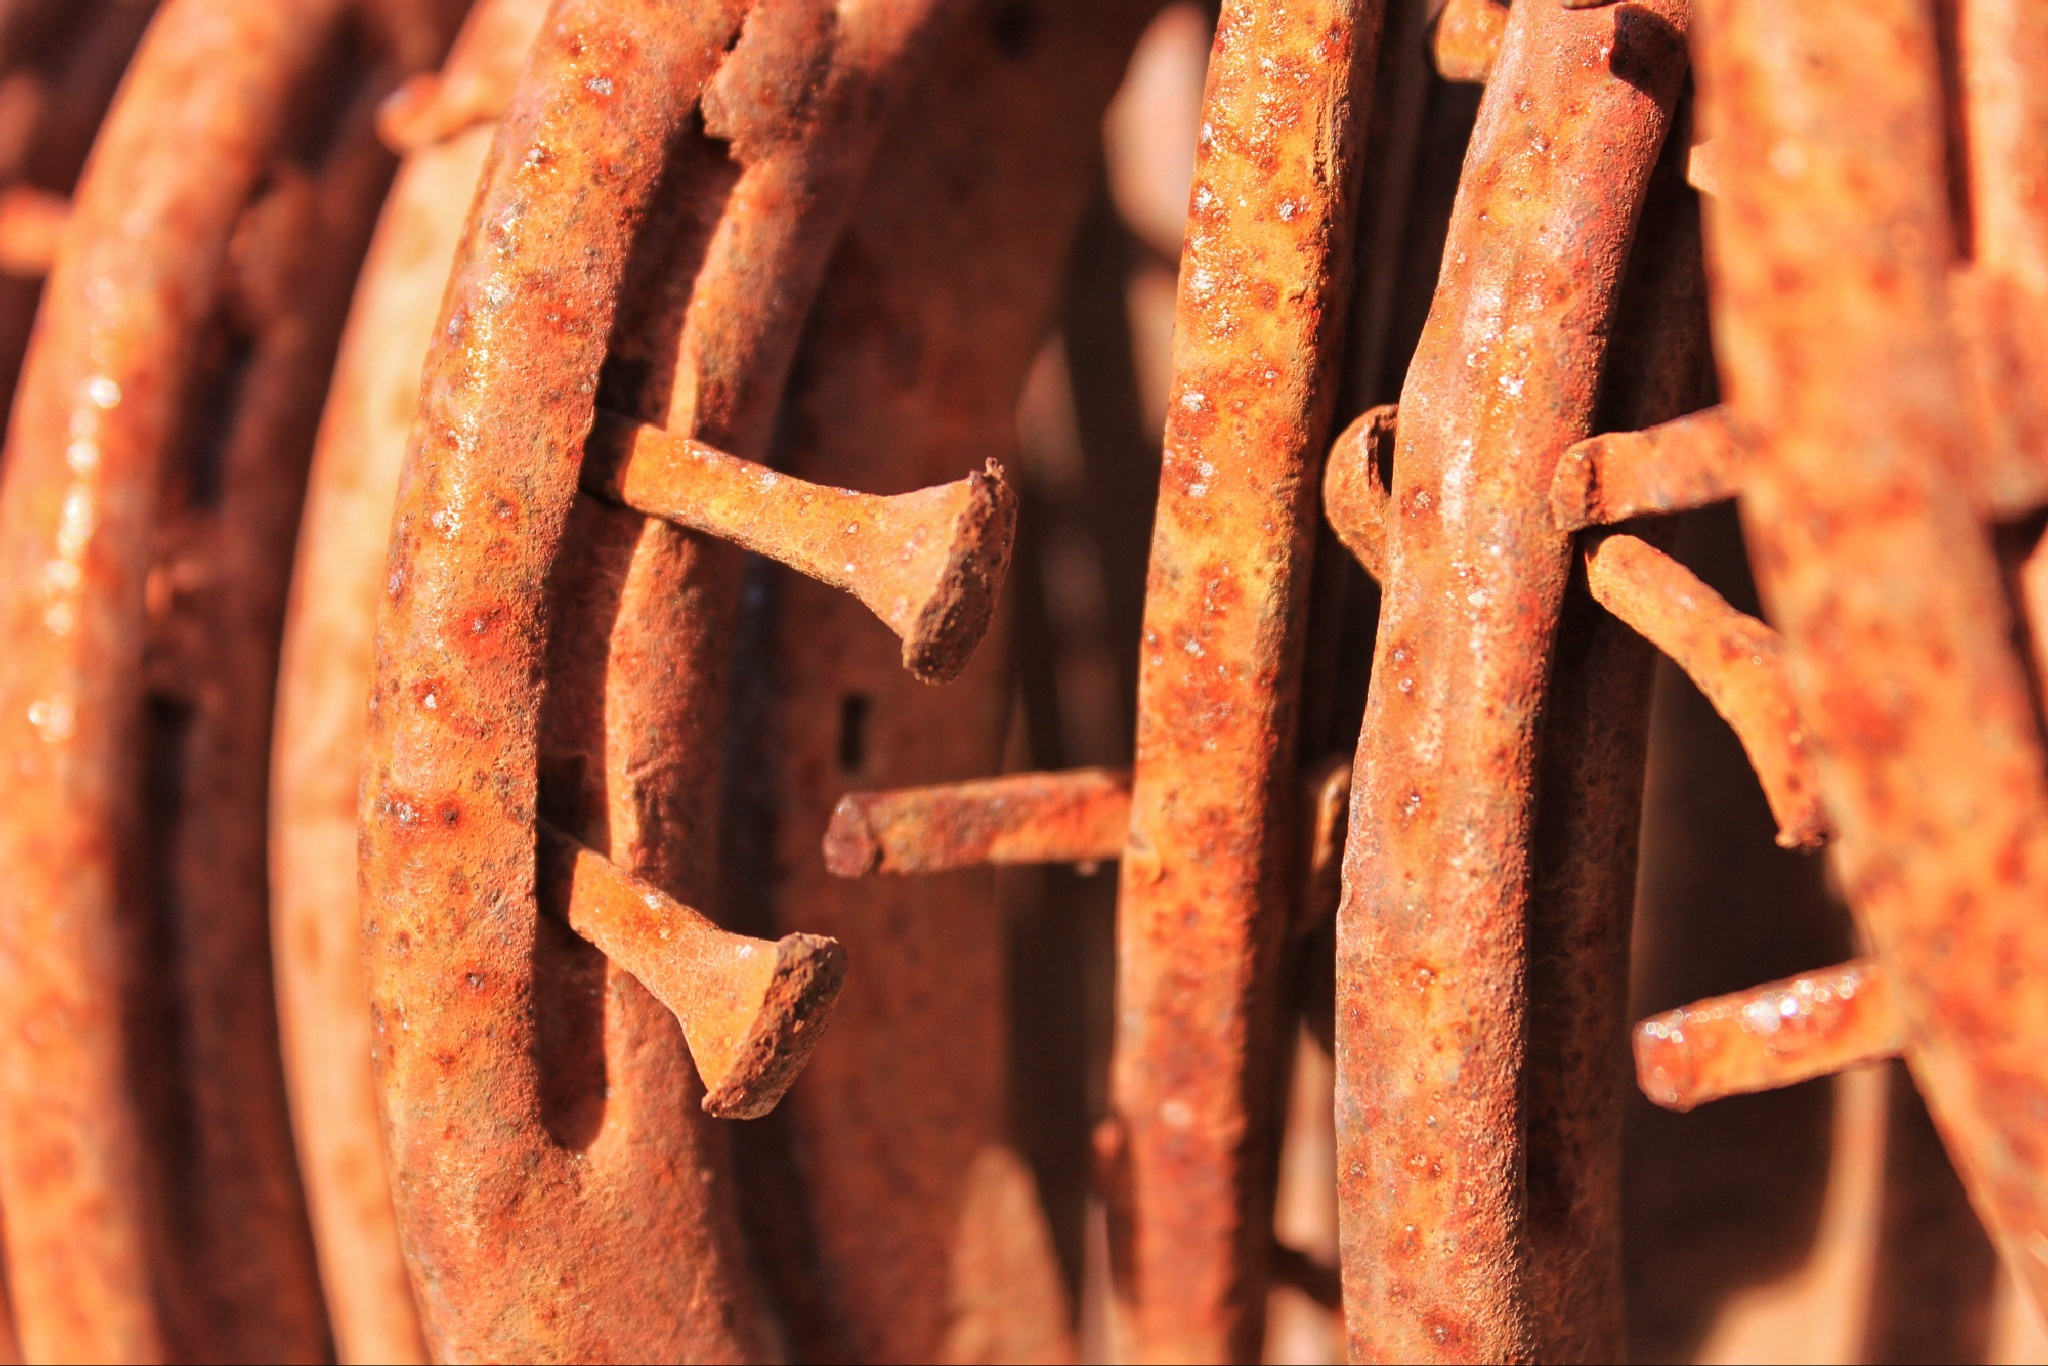 Old Horseshoes and Nails by shaunarwhitaker